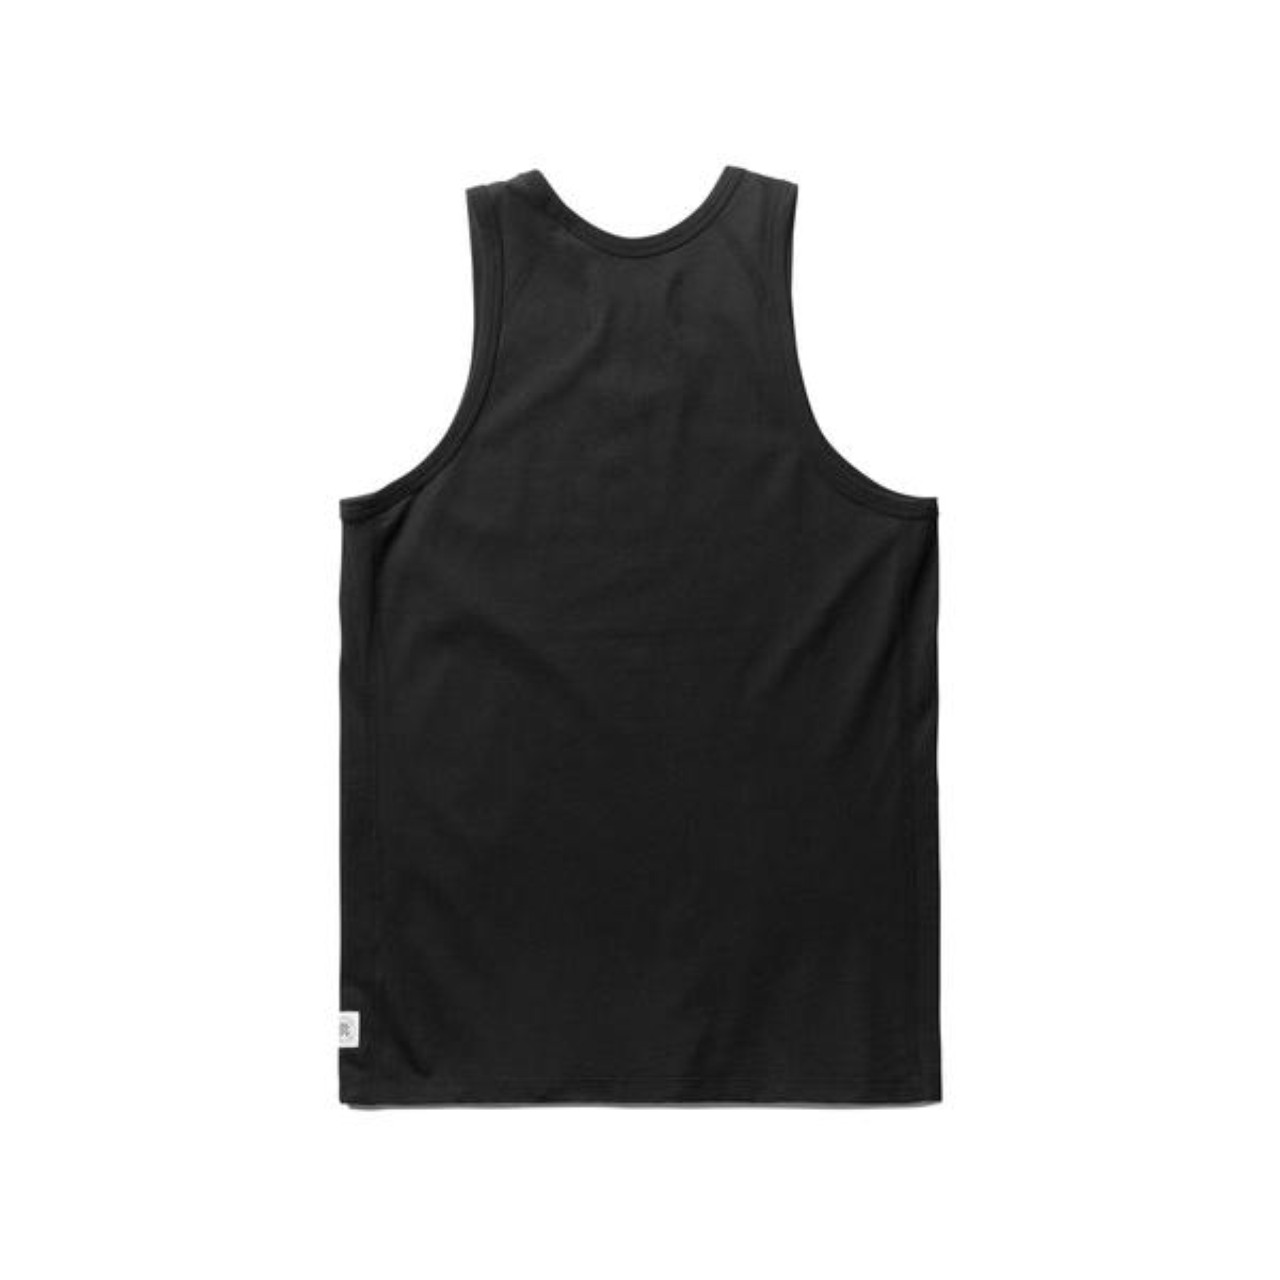 Reigning Champ Mesh Jersey Tank Top in Black